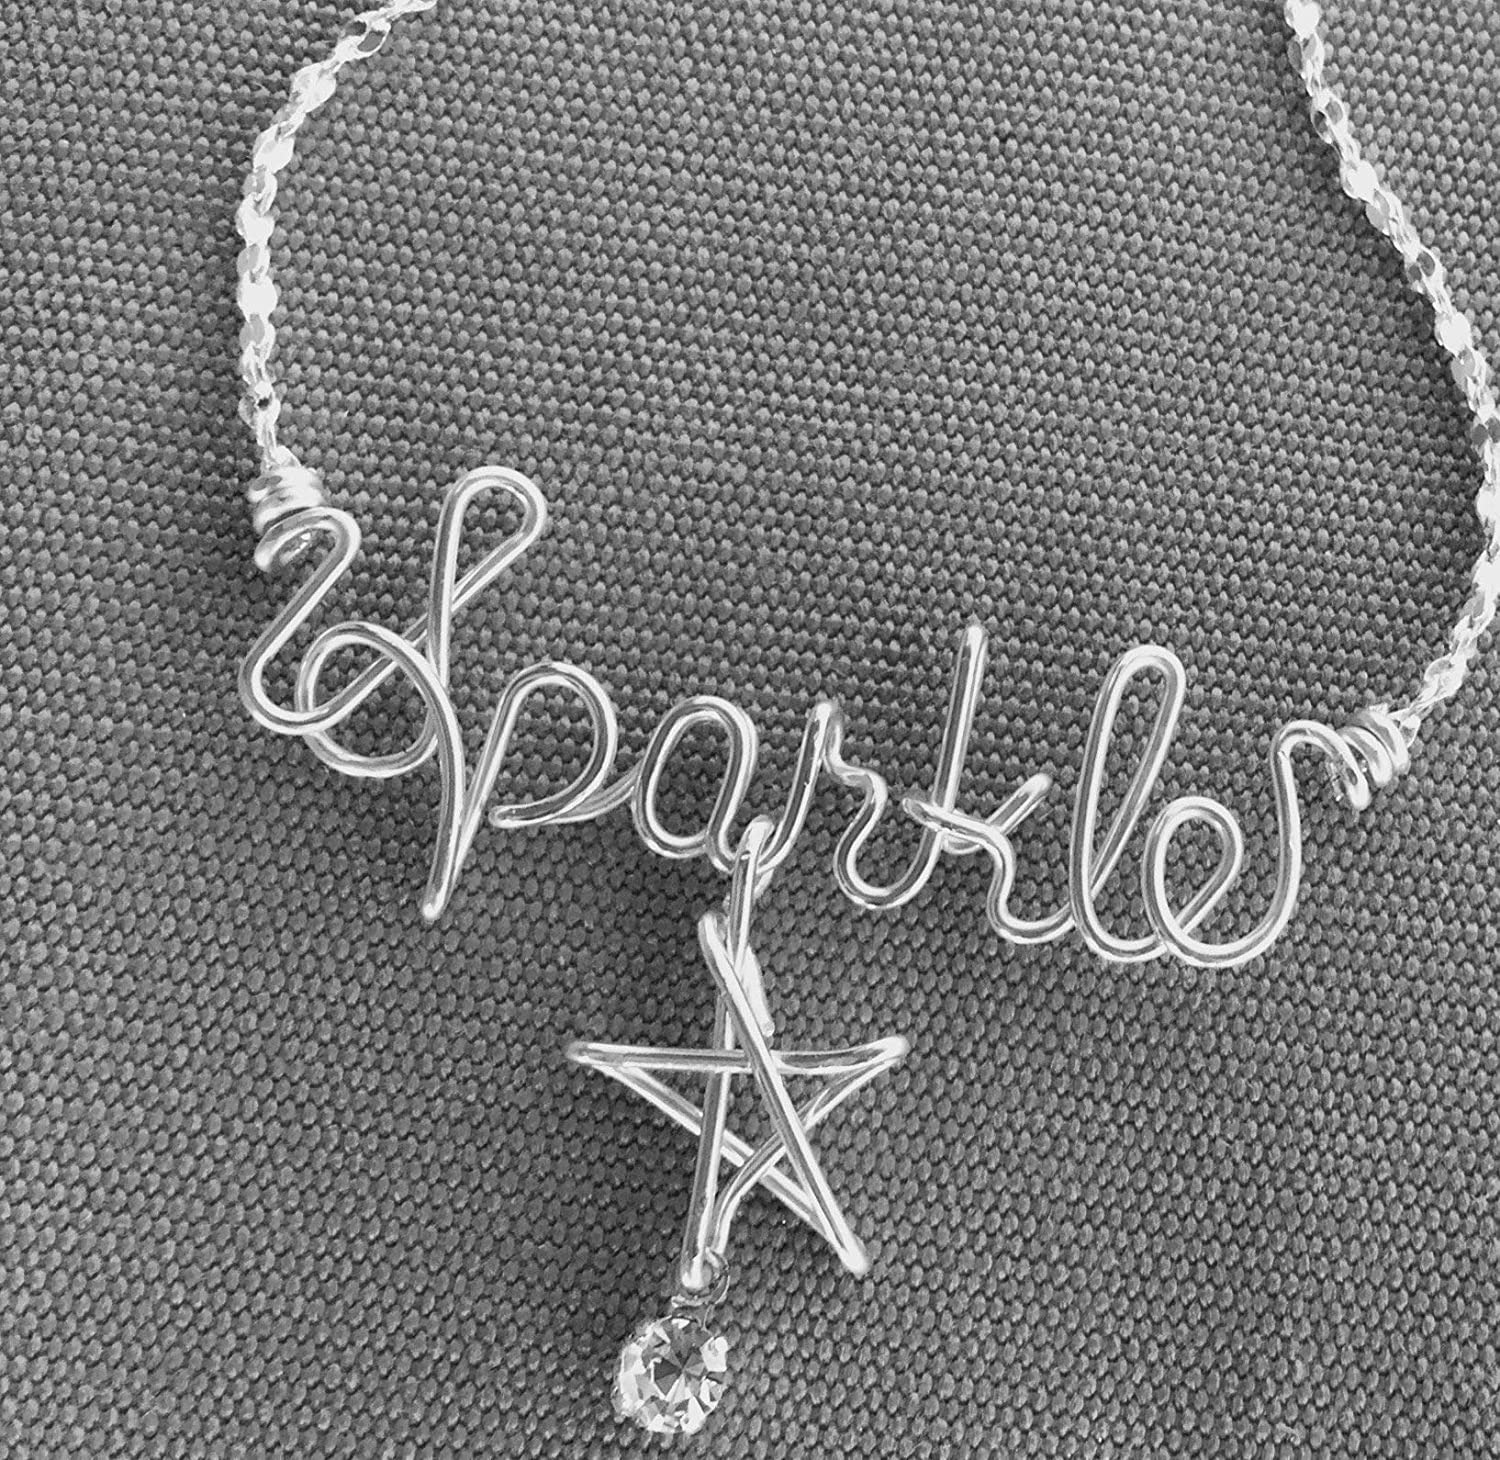 Amazon.com: Name Necklace~Personalized Silver Necklace or ...